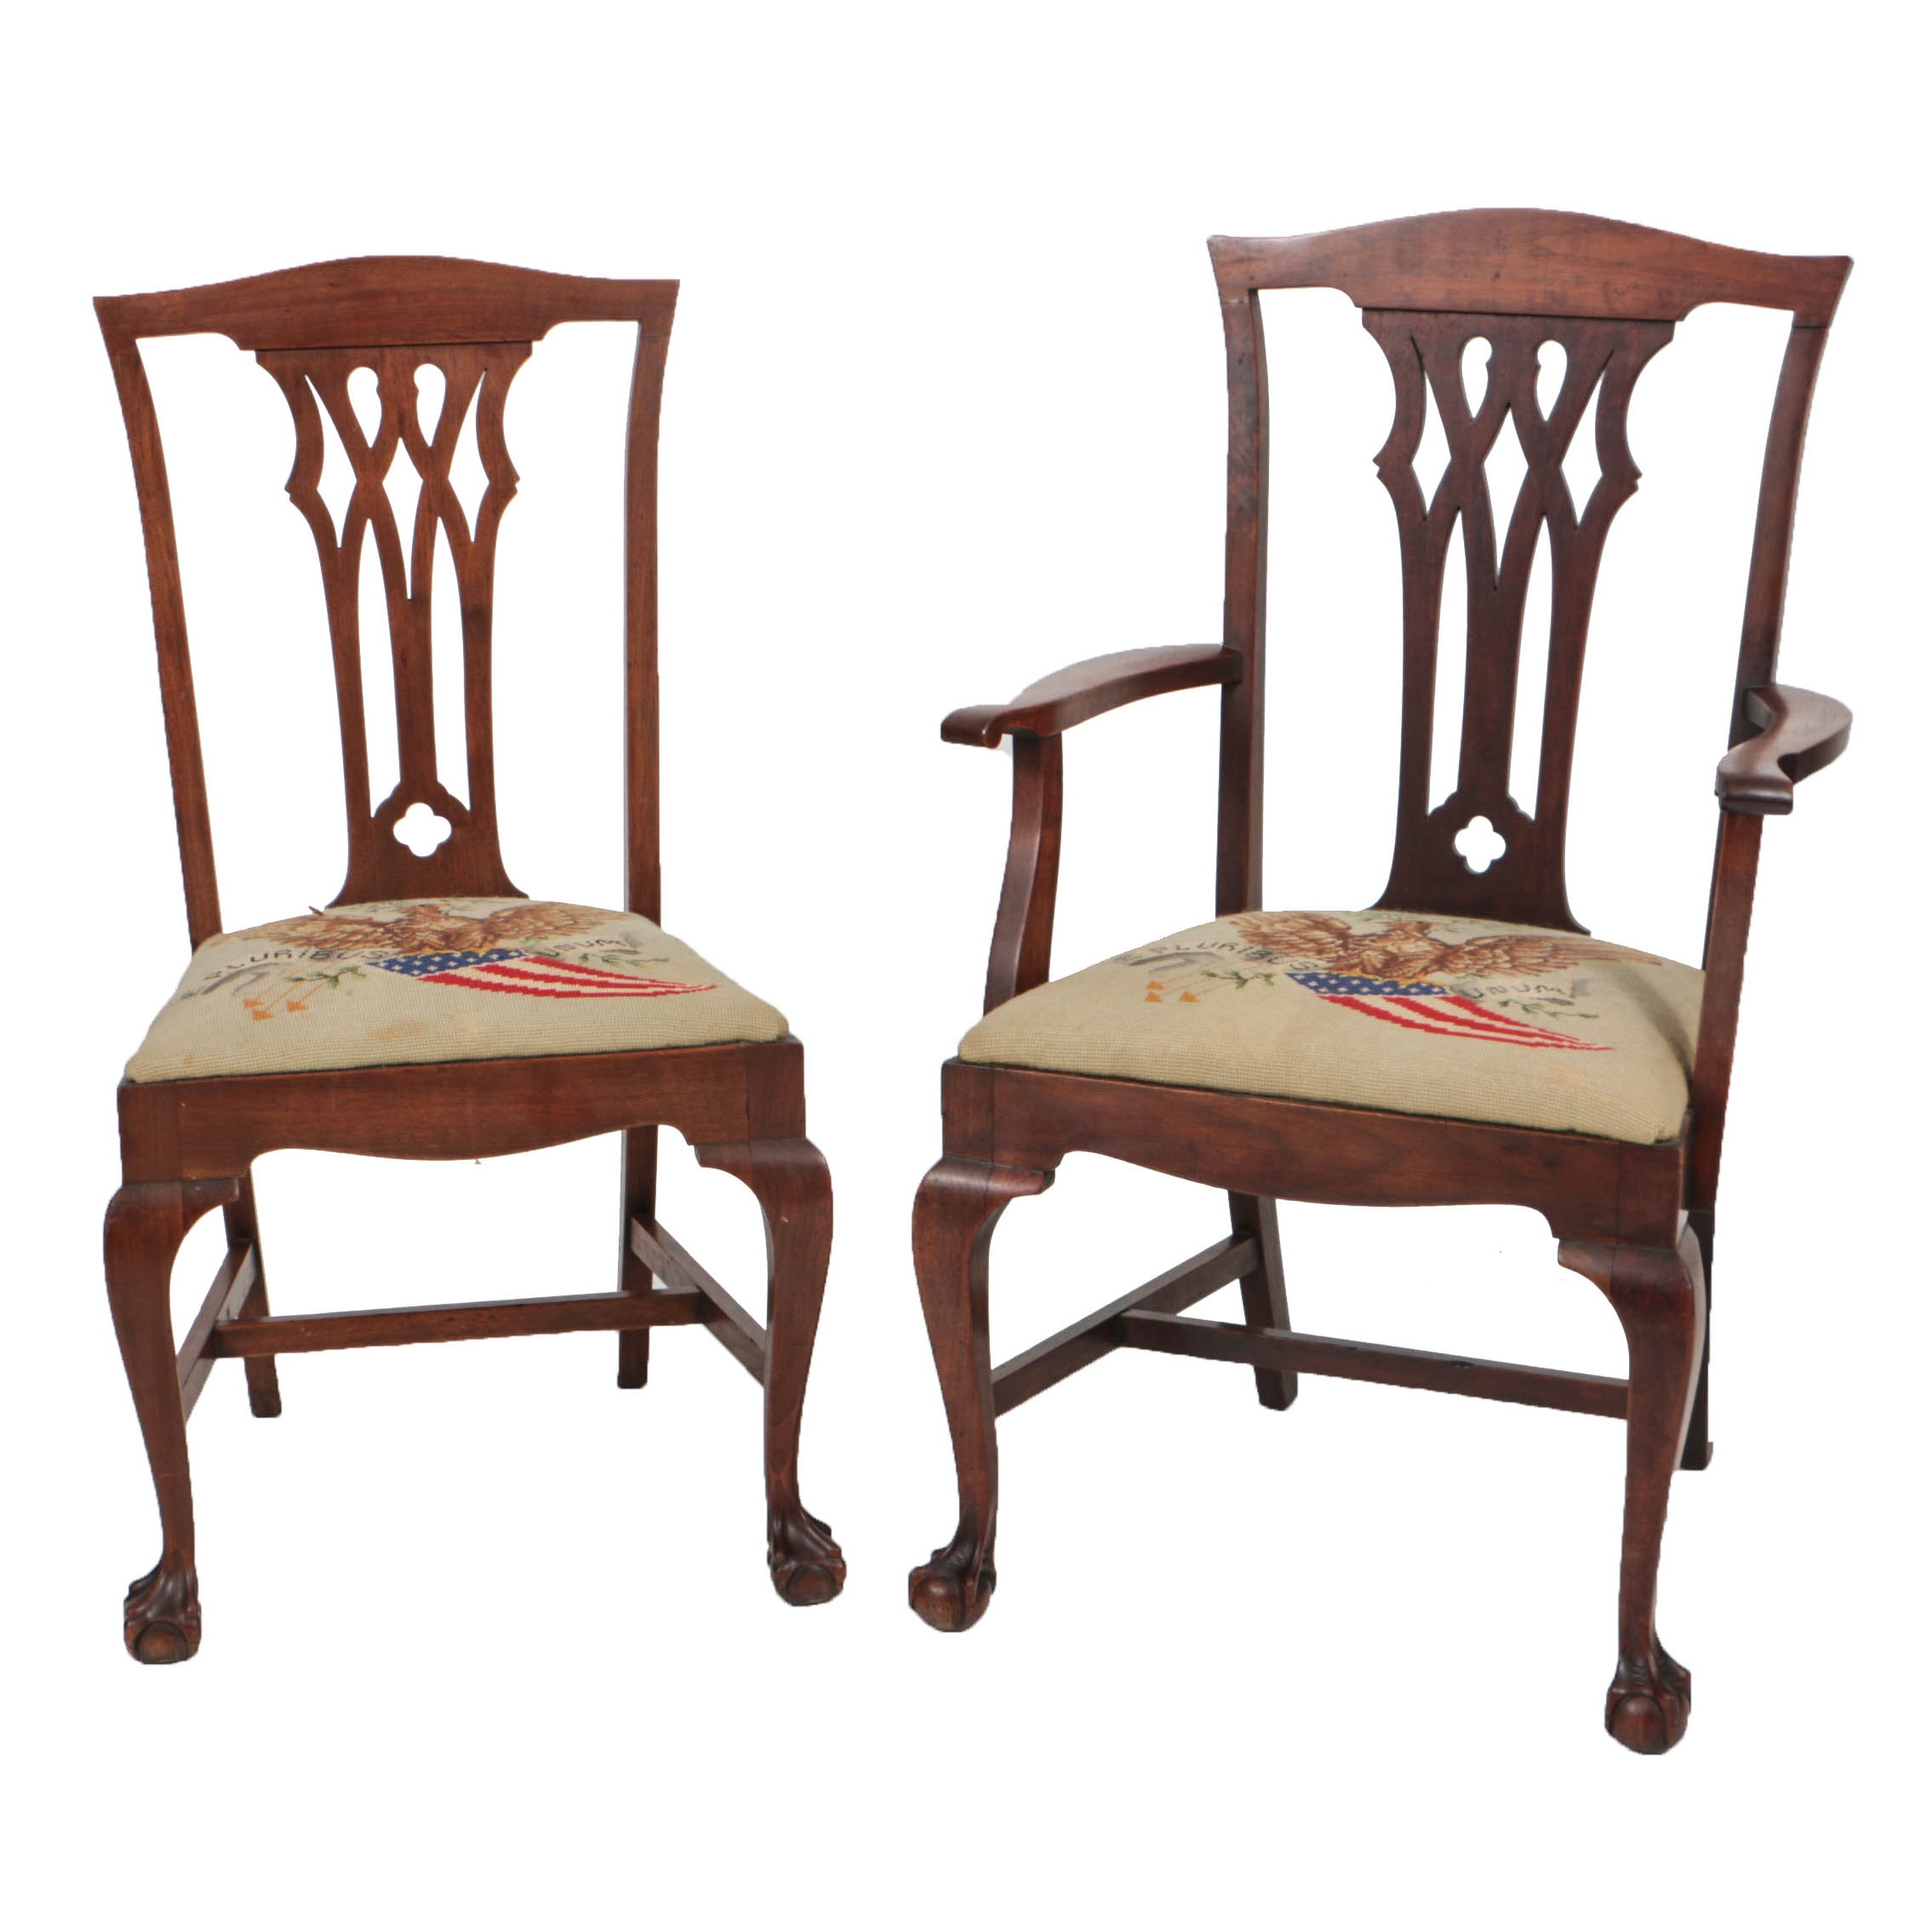 Antique Chippendale Style Mahogany Open Armchair and Side Chair